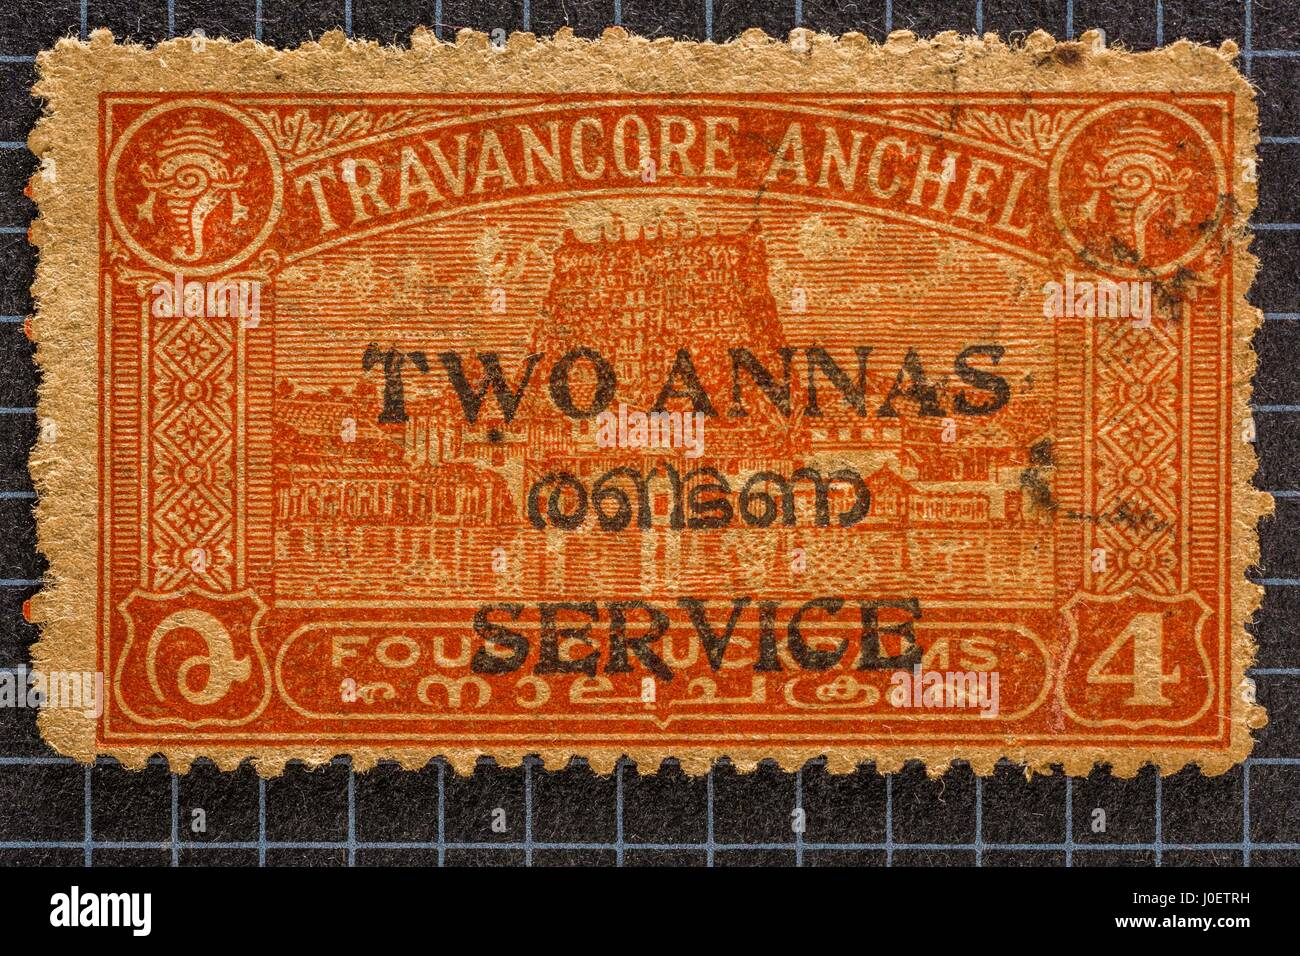 Padmanabhaswamy temple, travancore anchel, postage stamps, india, asia - Stock Image